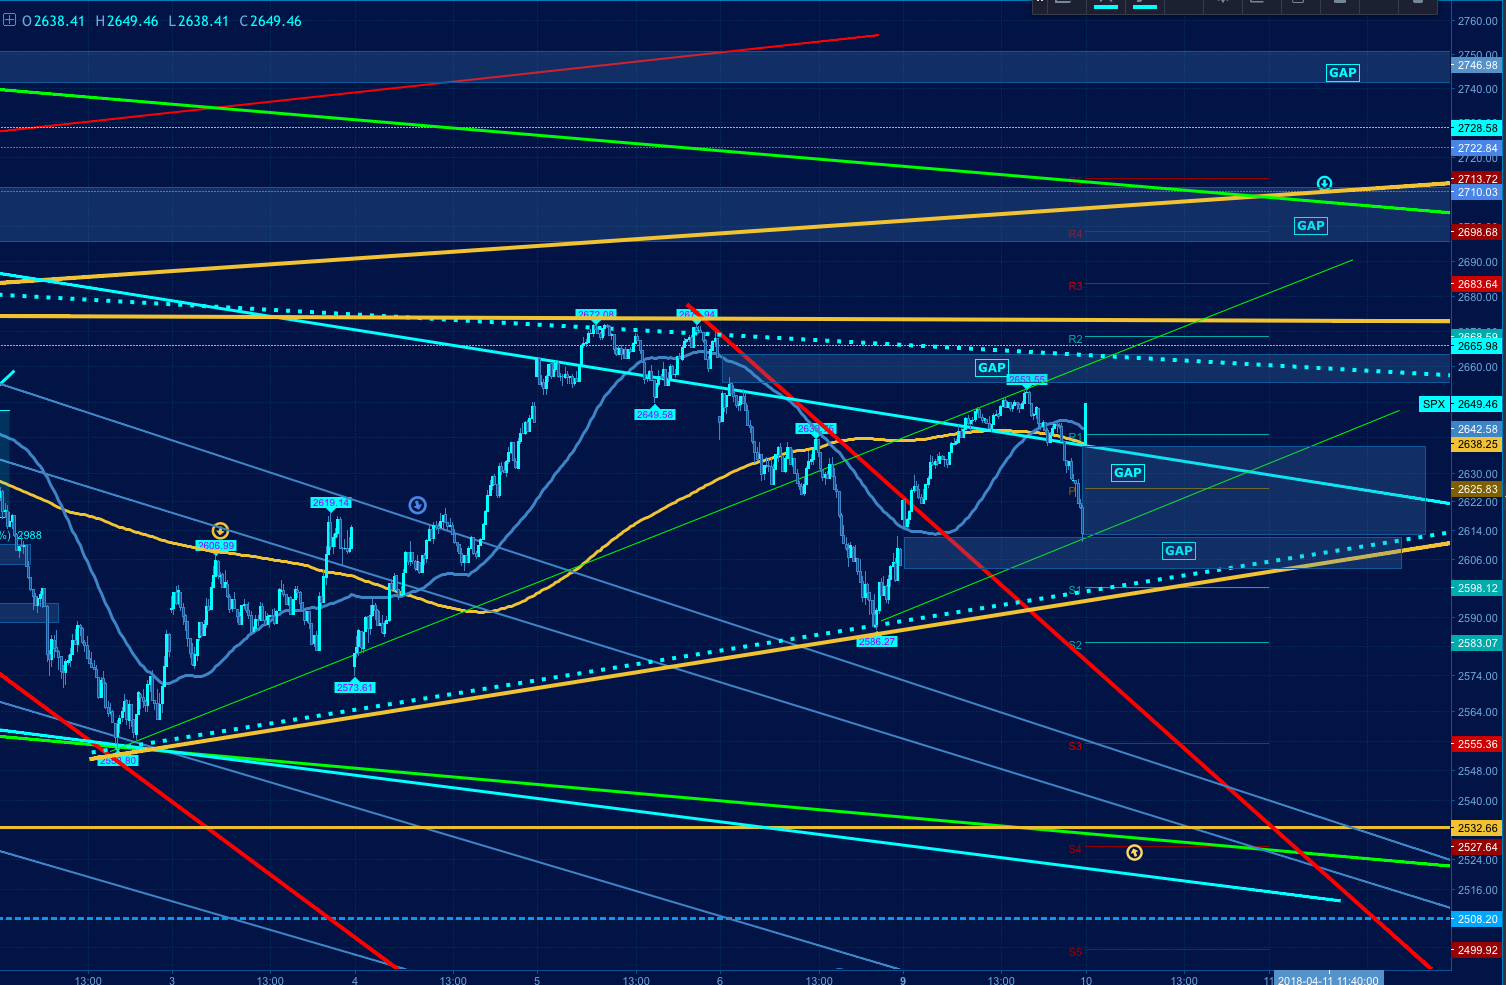 Screen Shot 2018-04-10 at 6.32.20 AM.png